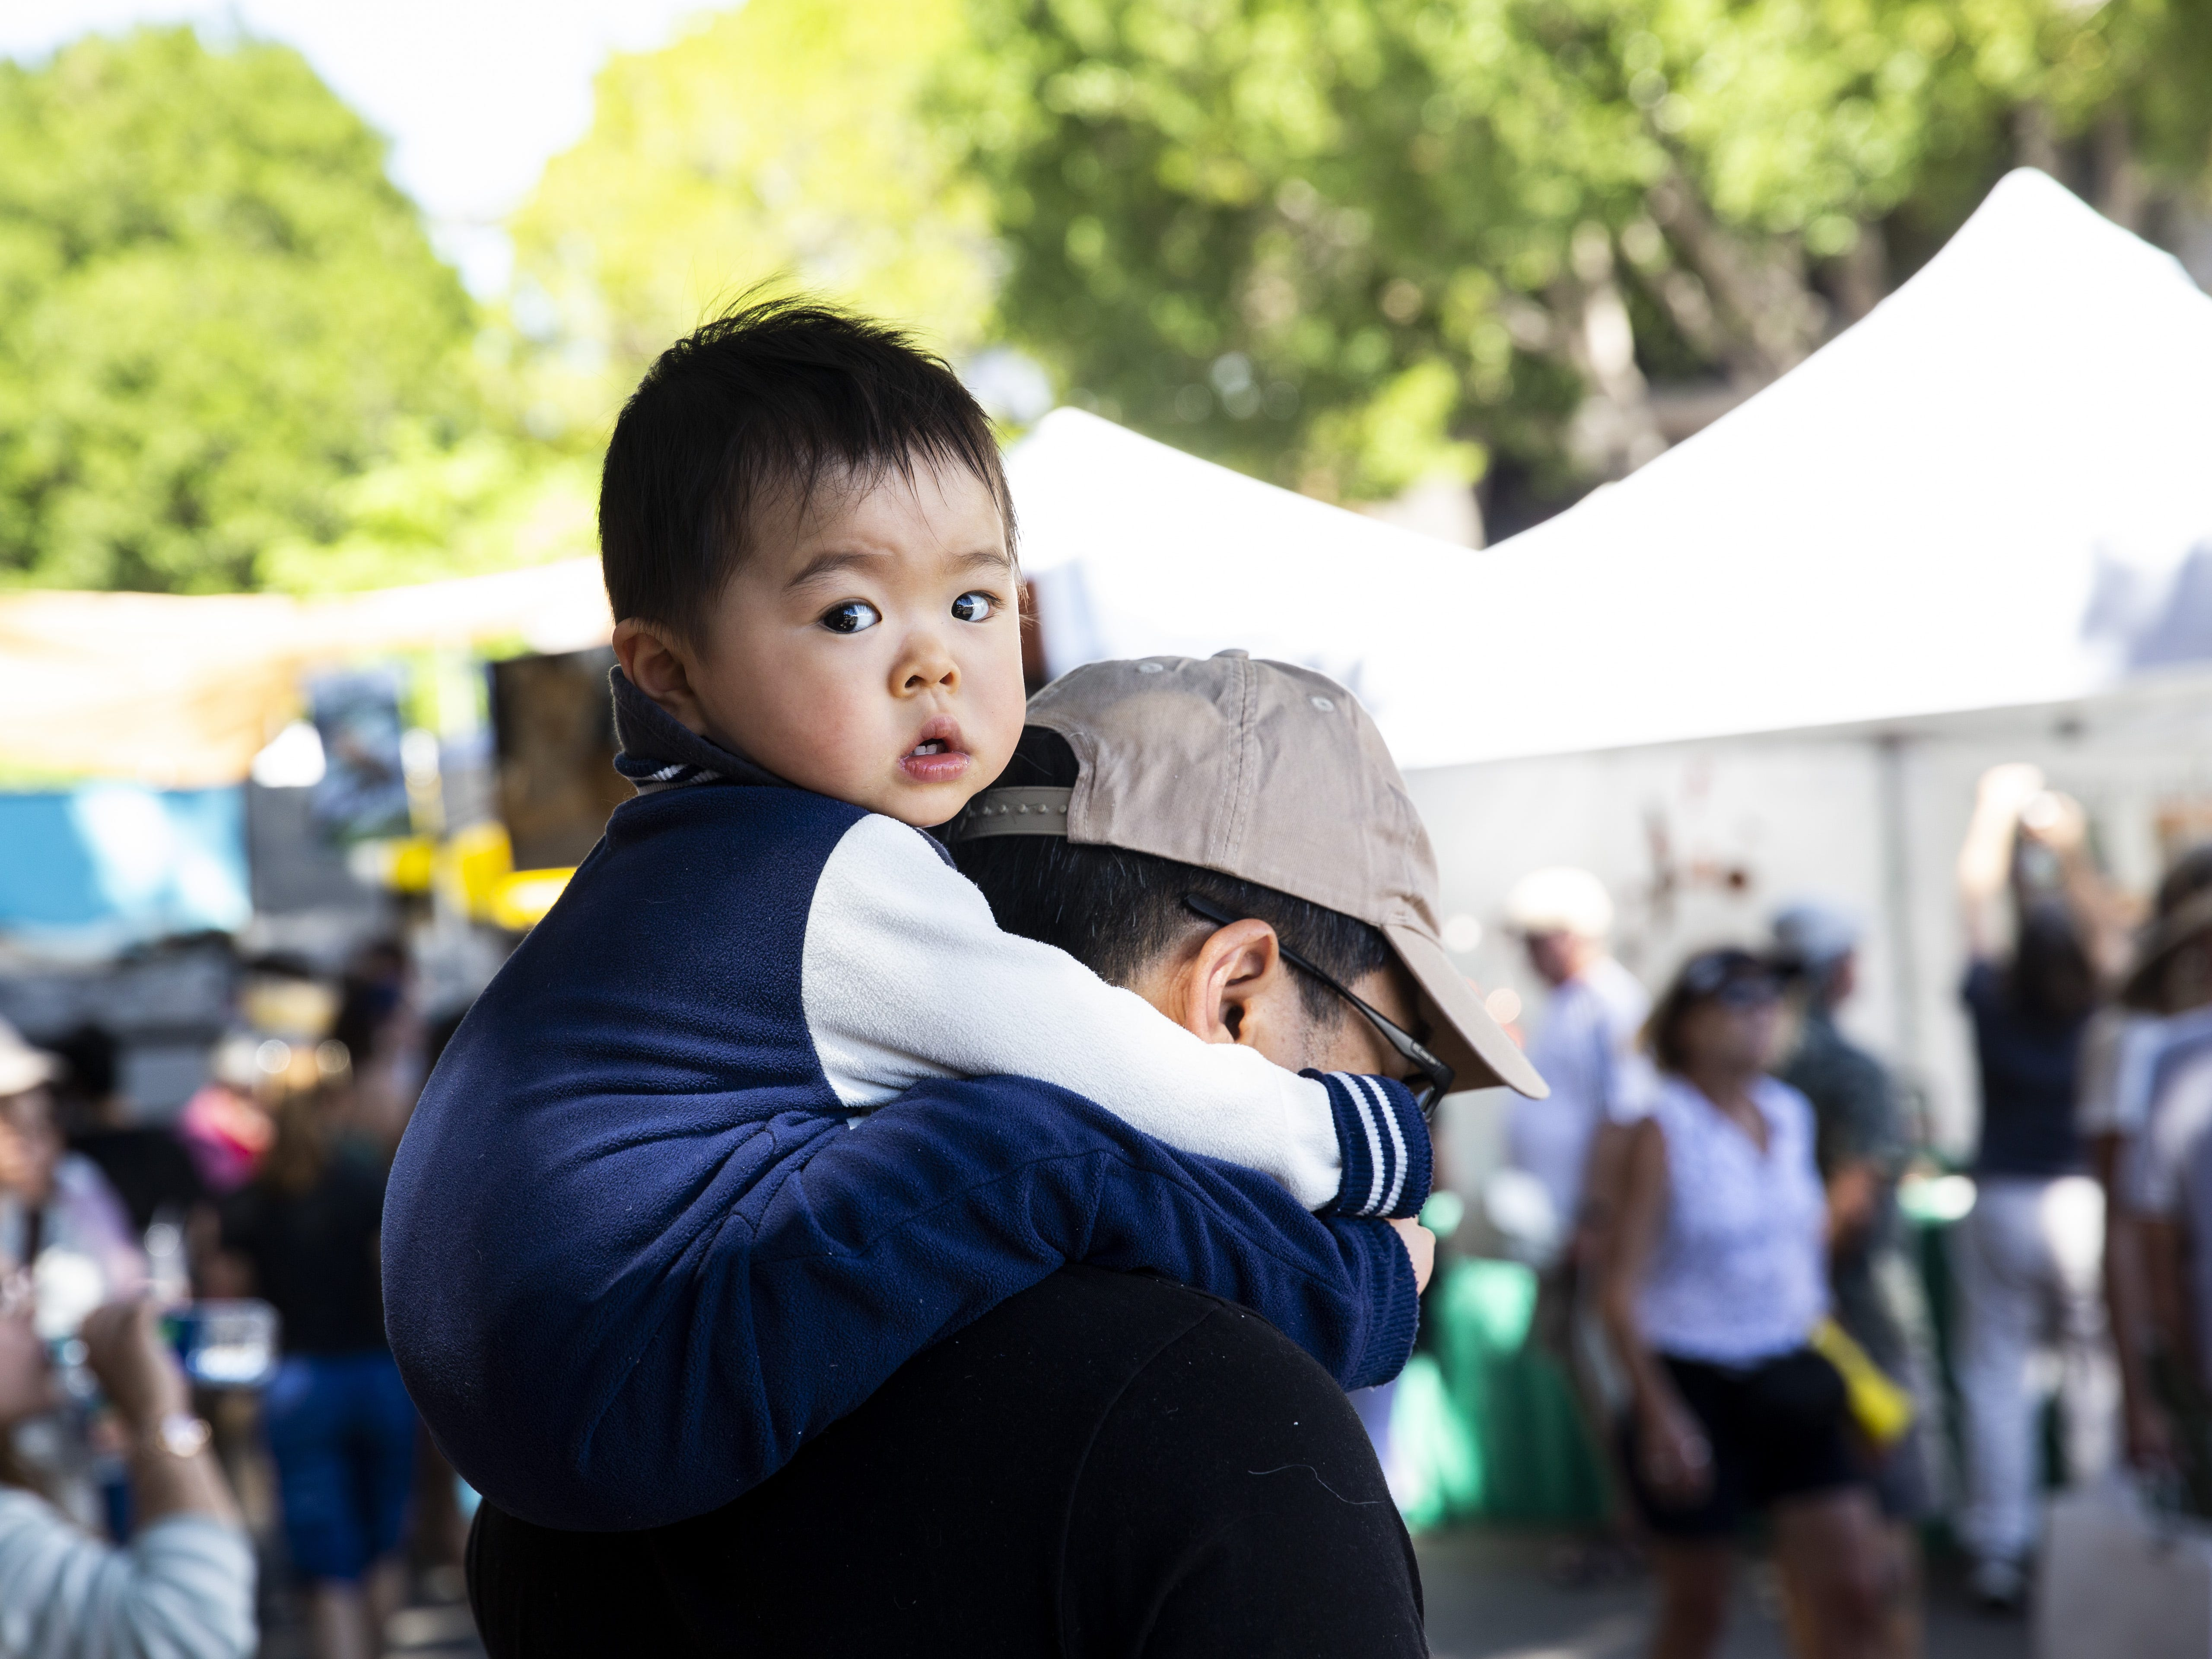 Trevor Wang, who is almost 1, clings to his father's neck at the Spring Tempe Festival of the Arts in downtown Tempe on March 30, 2019.